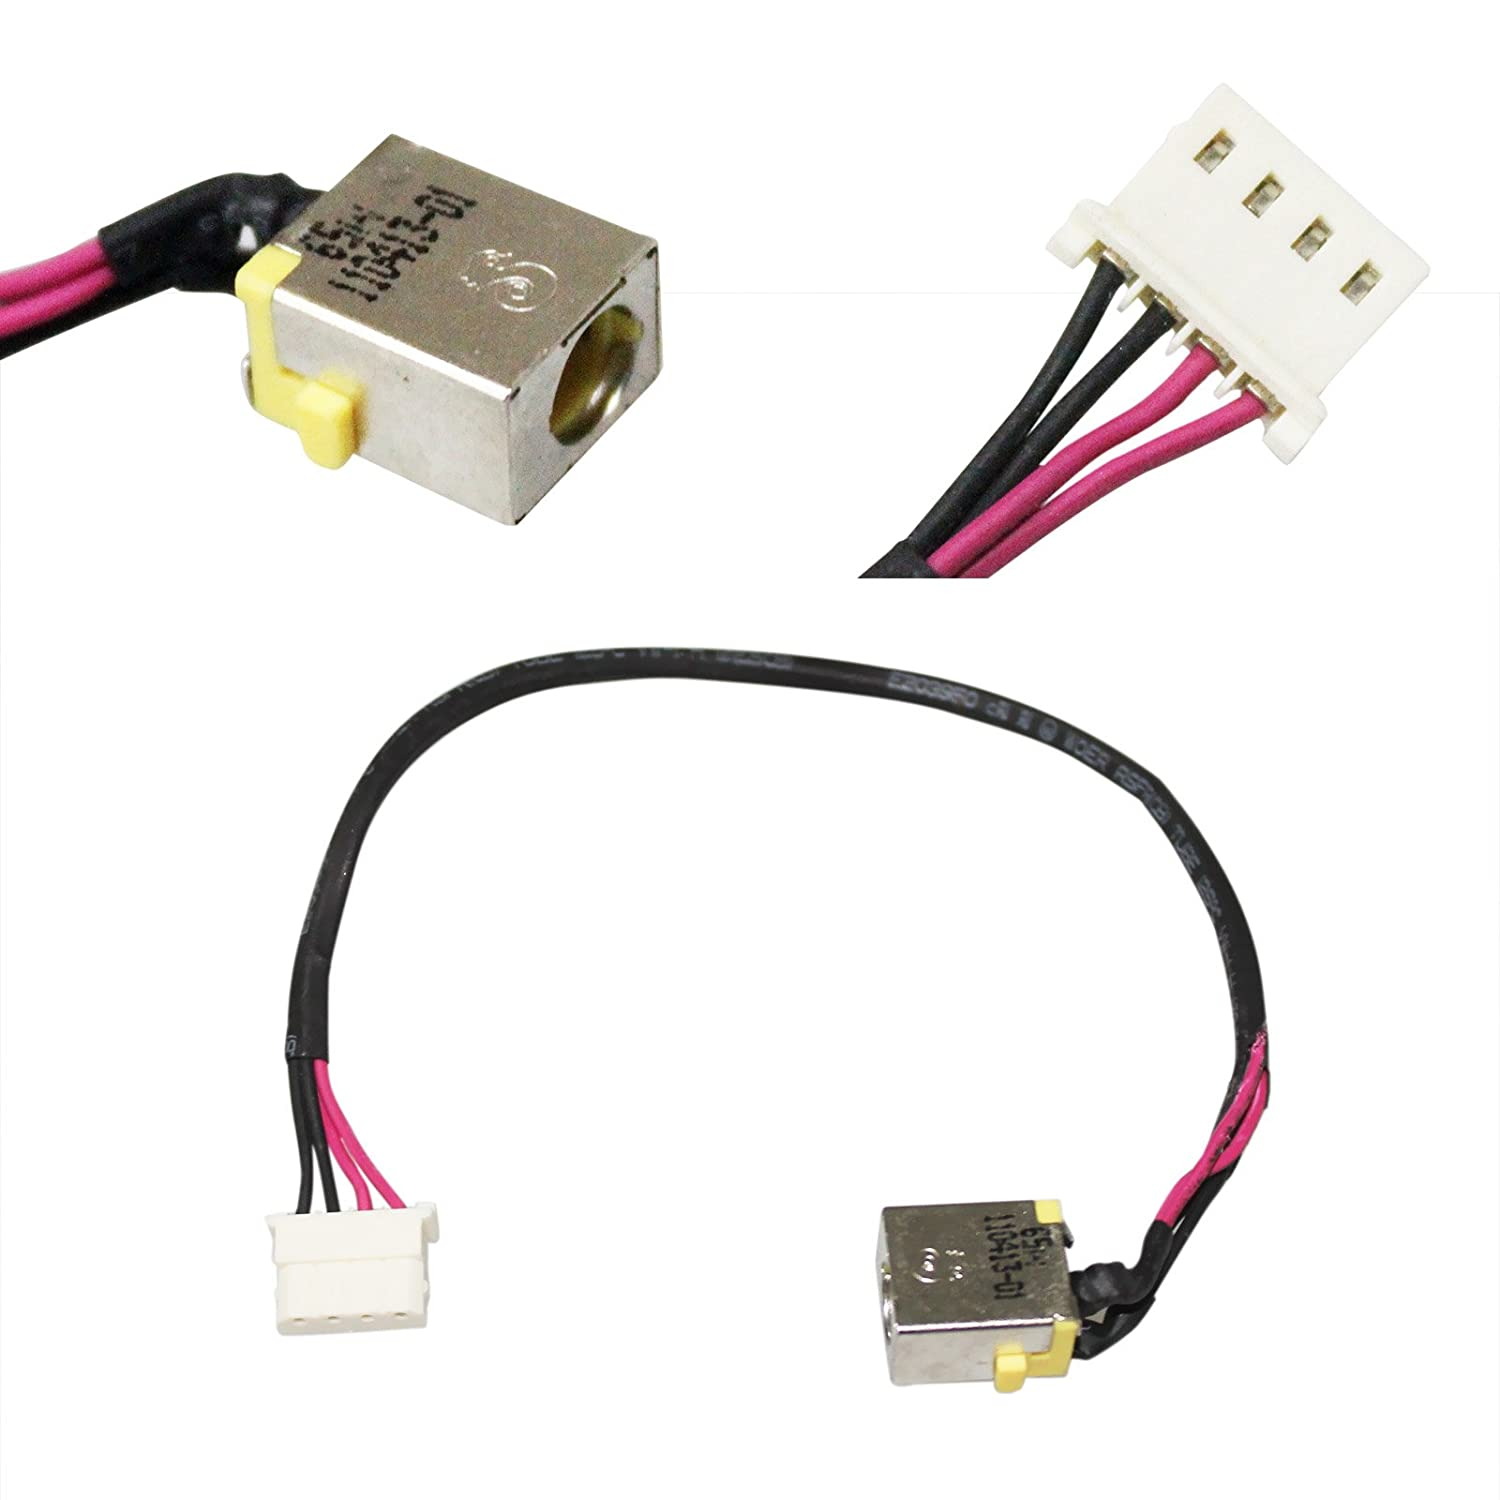 GinTai DC in Power Jack Socket with Cable Replacement for Acer Aspire DD0ZRKAD000 DD0ZRKAD100 DD0ZAAAD000